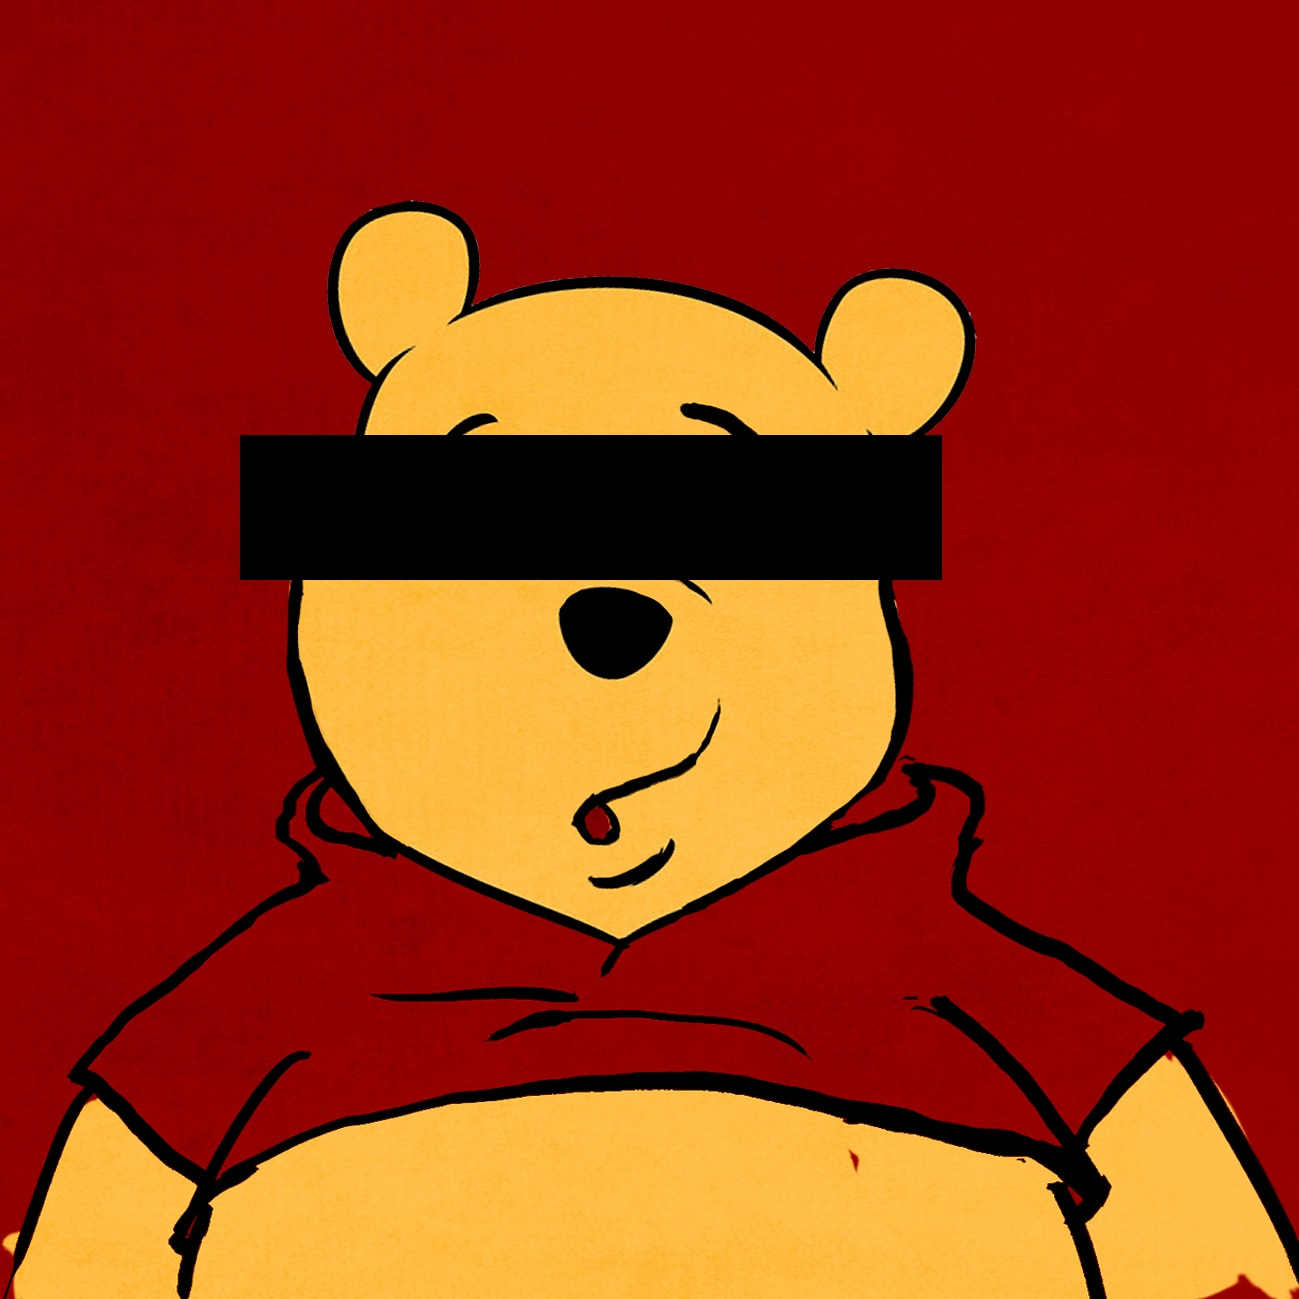 Chinese flag behind Winnie the Pooh with black tape over eyes (State Dept./D. Thompson)